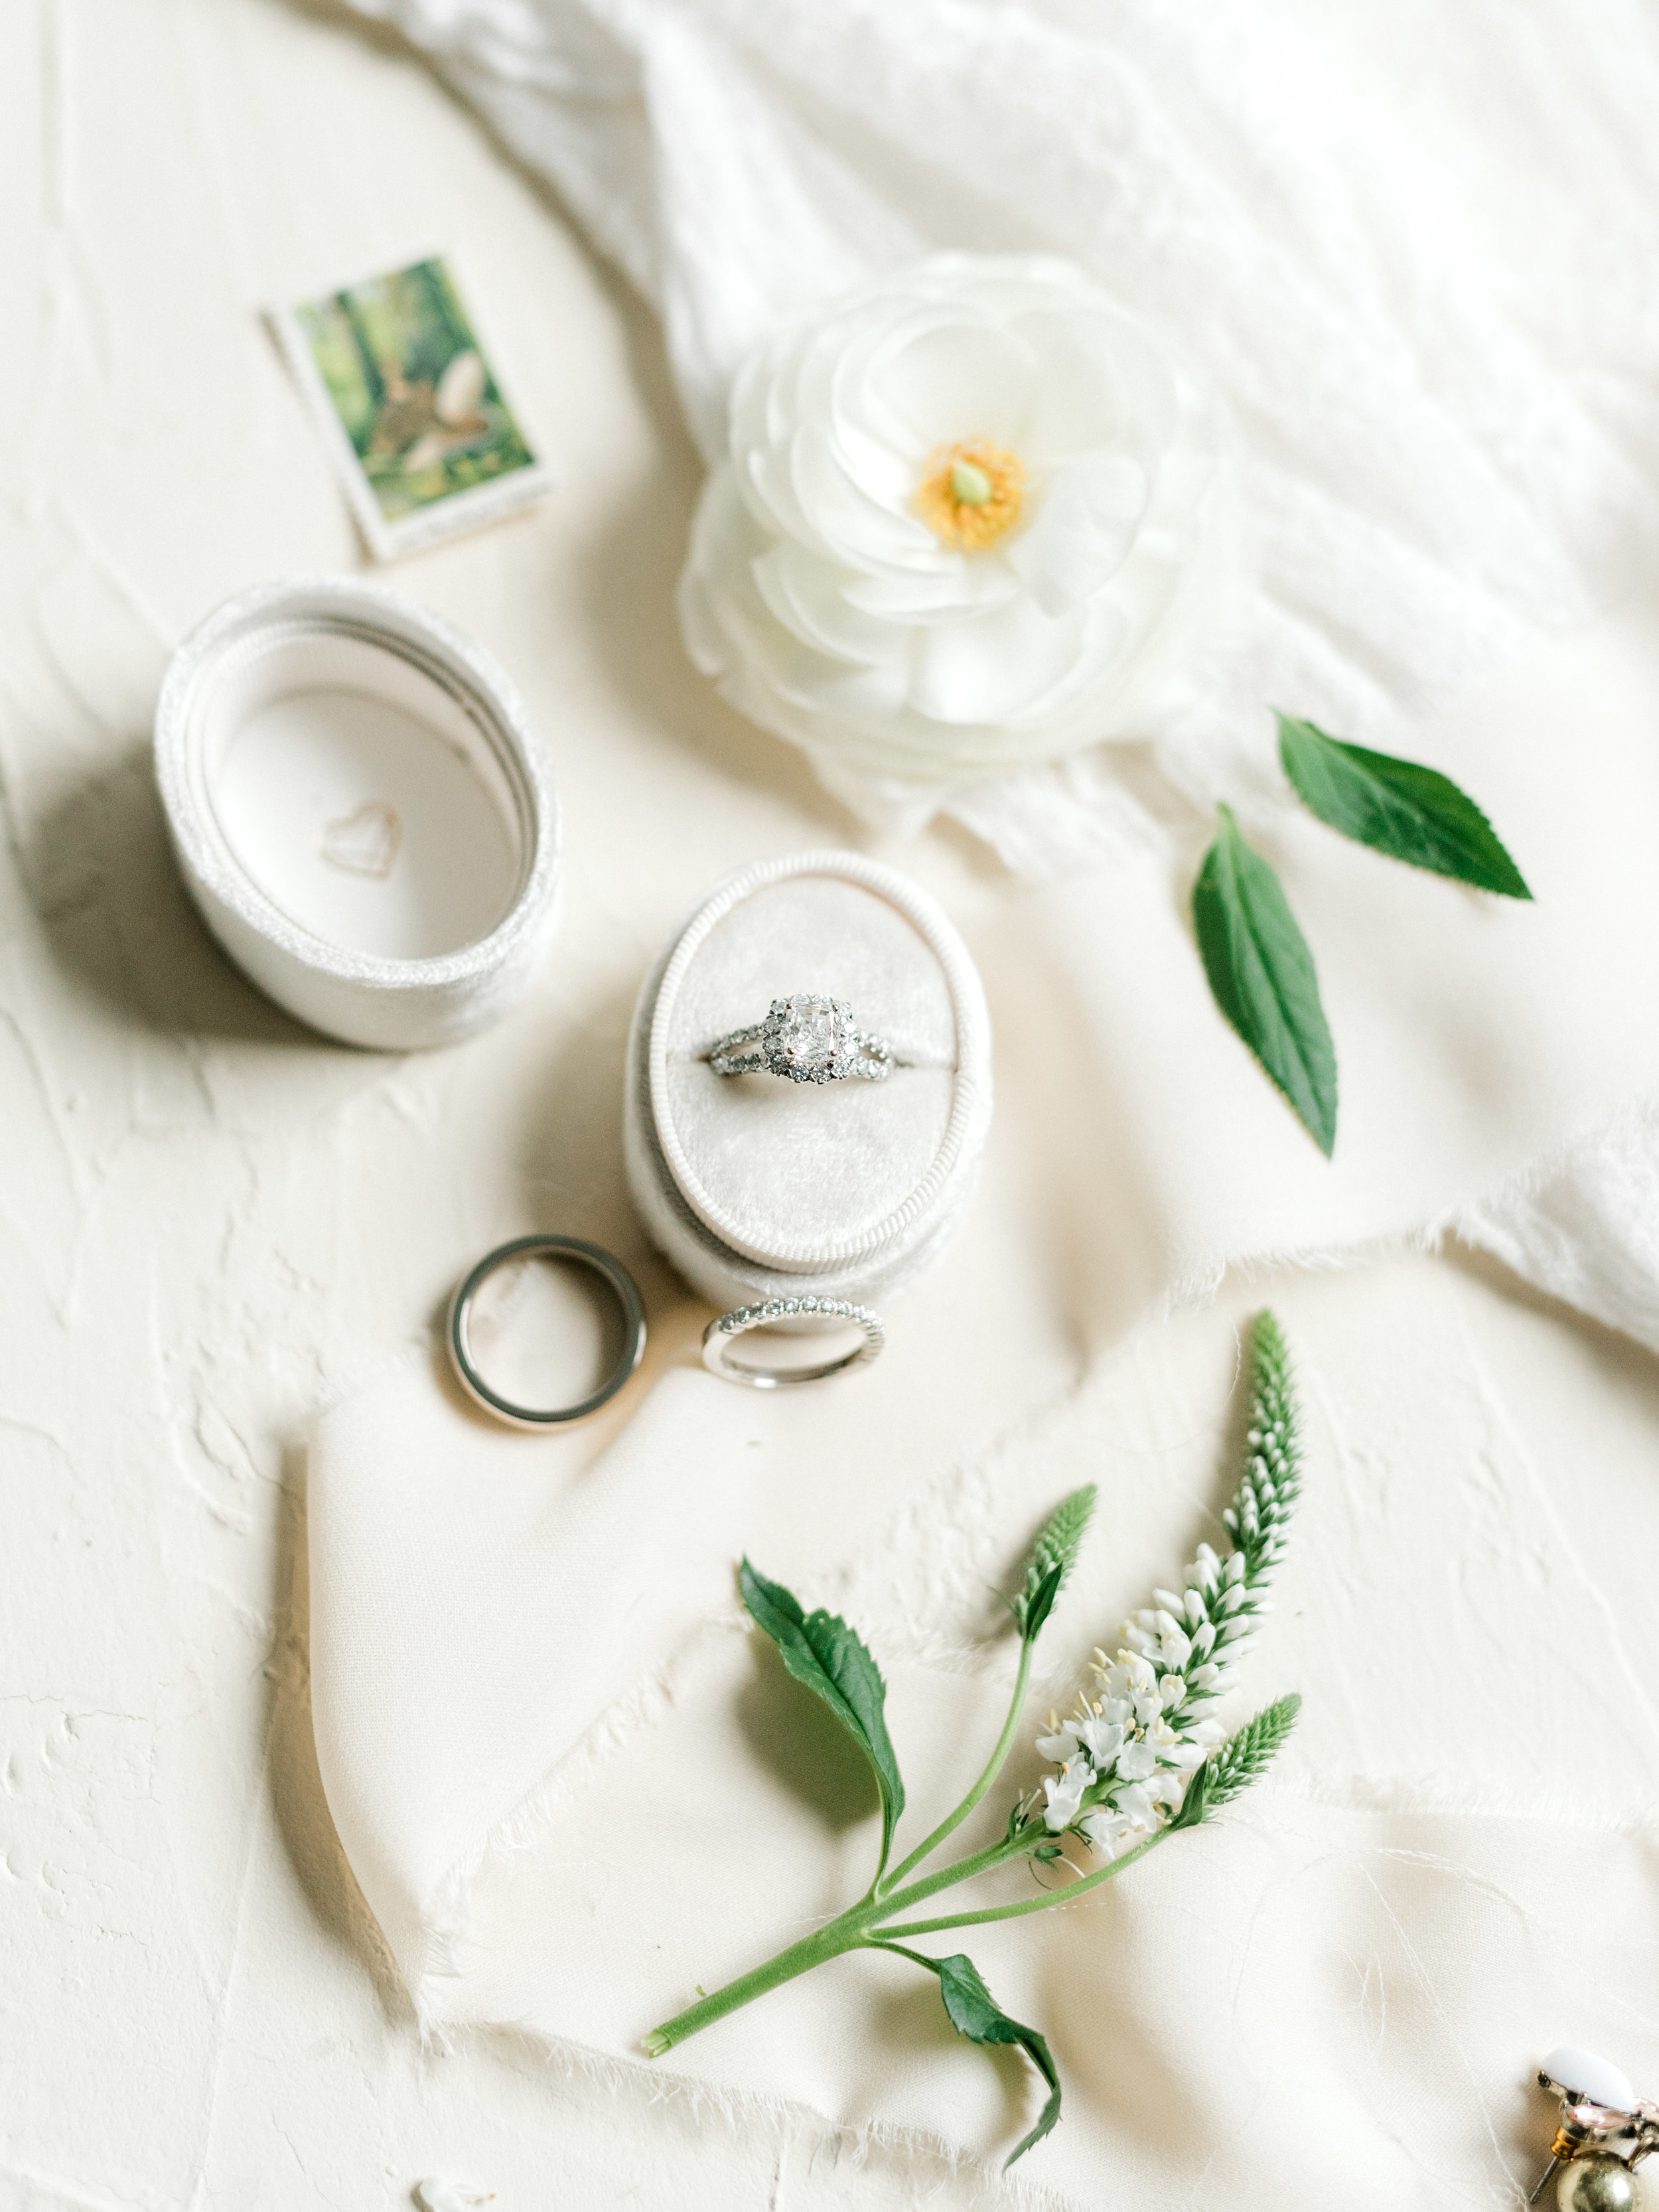 Beautiful white and green details, with a sparkling diamond ring from this bright boho chic Tyler Gardens wedding in Bucks County, need we way more?